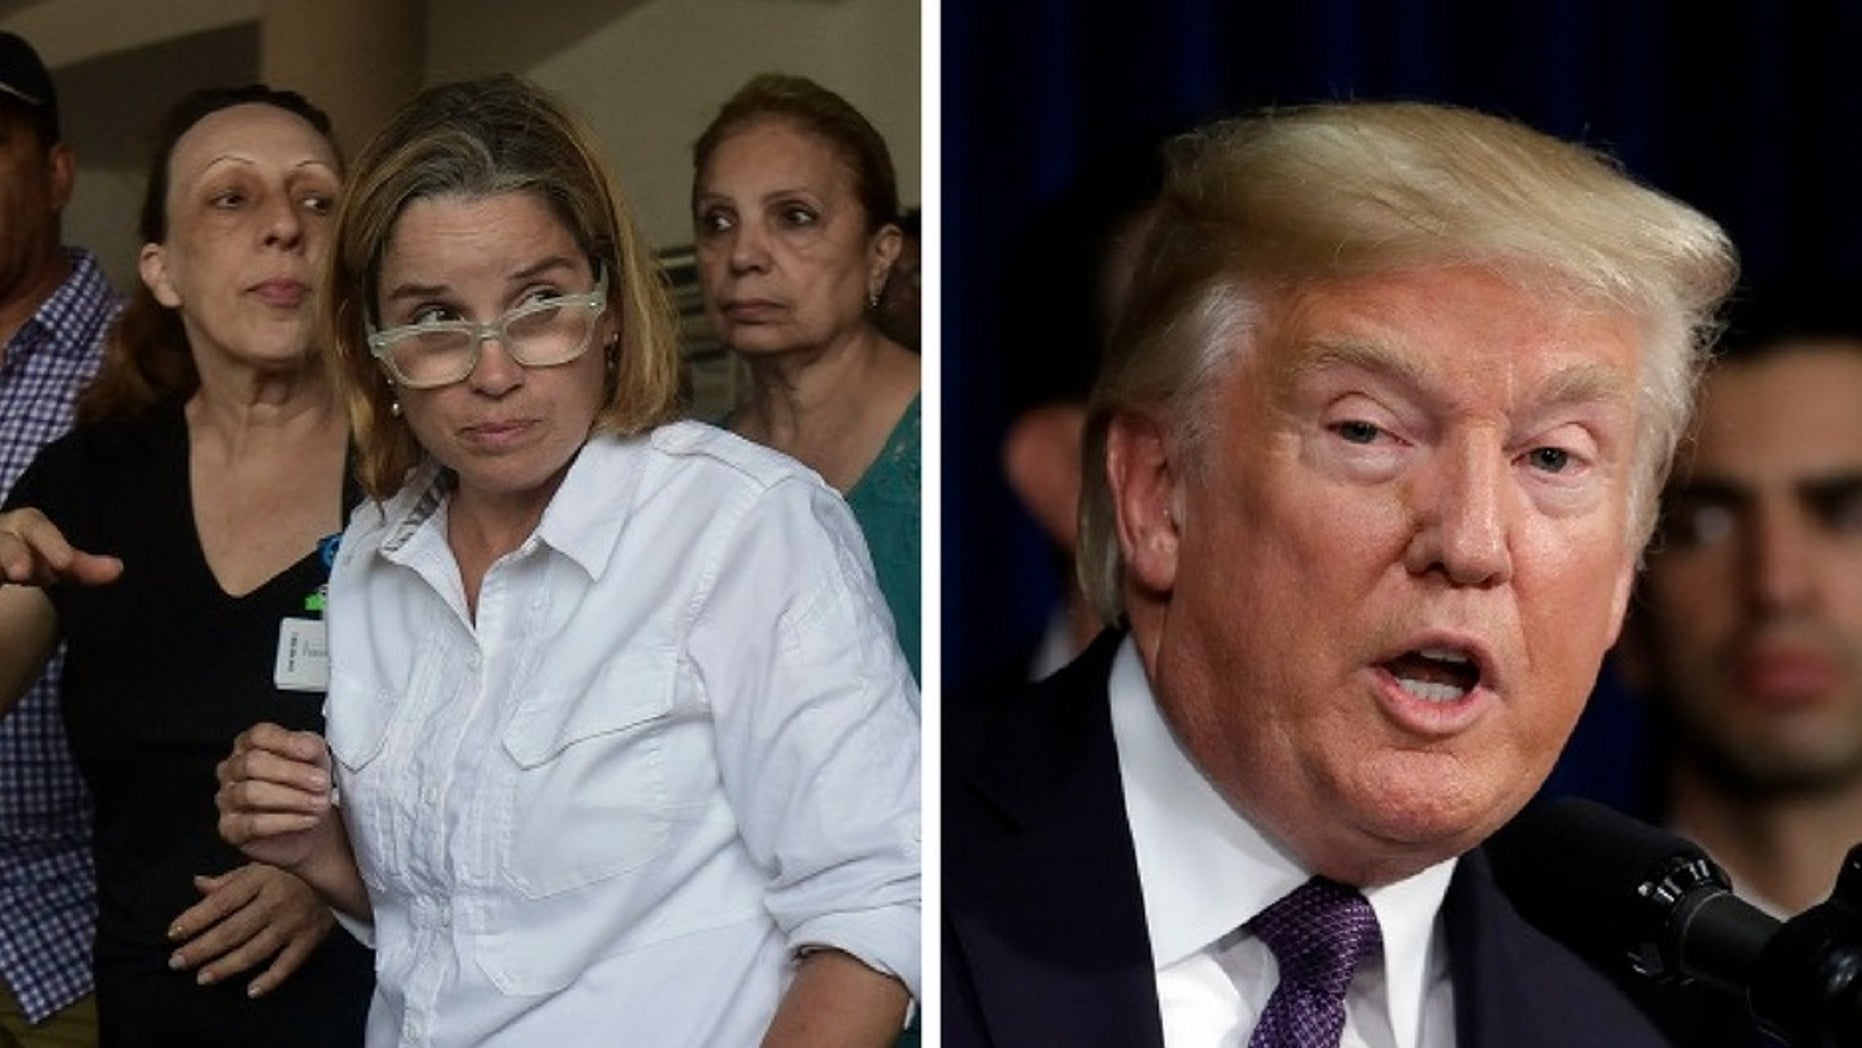 San Juan Mayor Carmen Yulin Cruz donned 'nasty' shirt during interview Wednesday in response to President Trump's tweet.